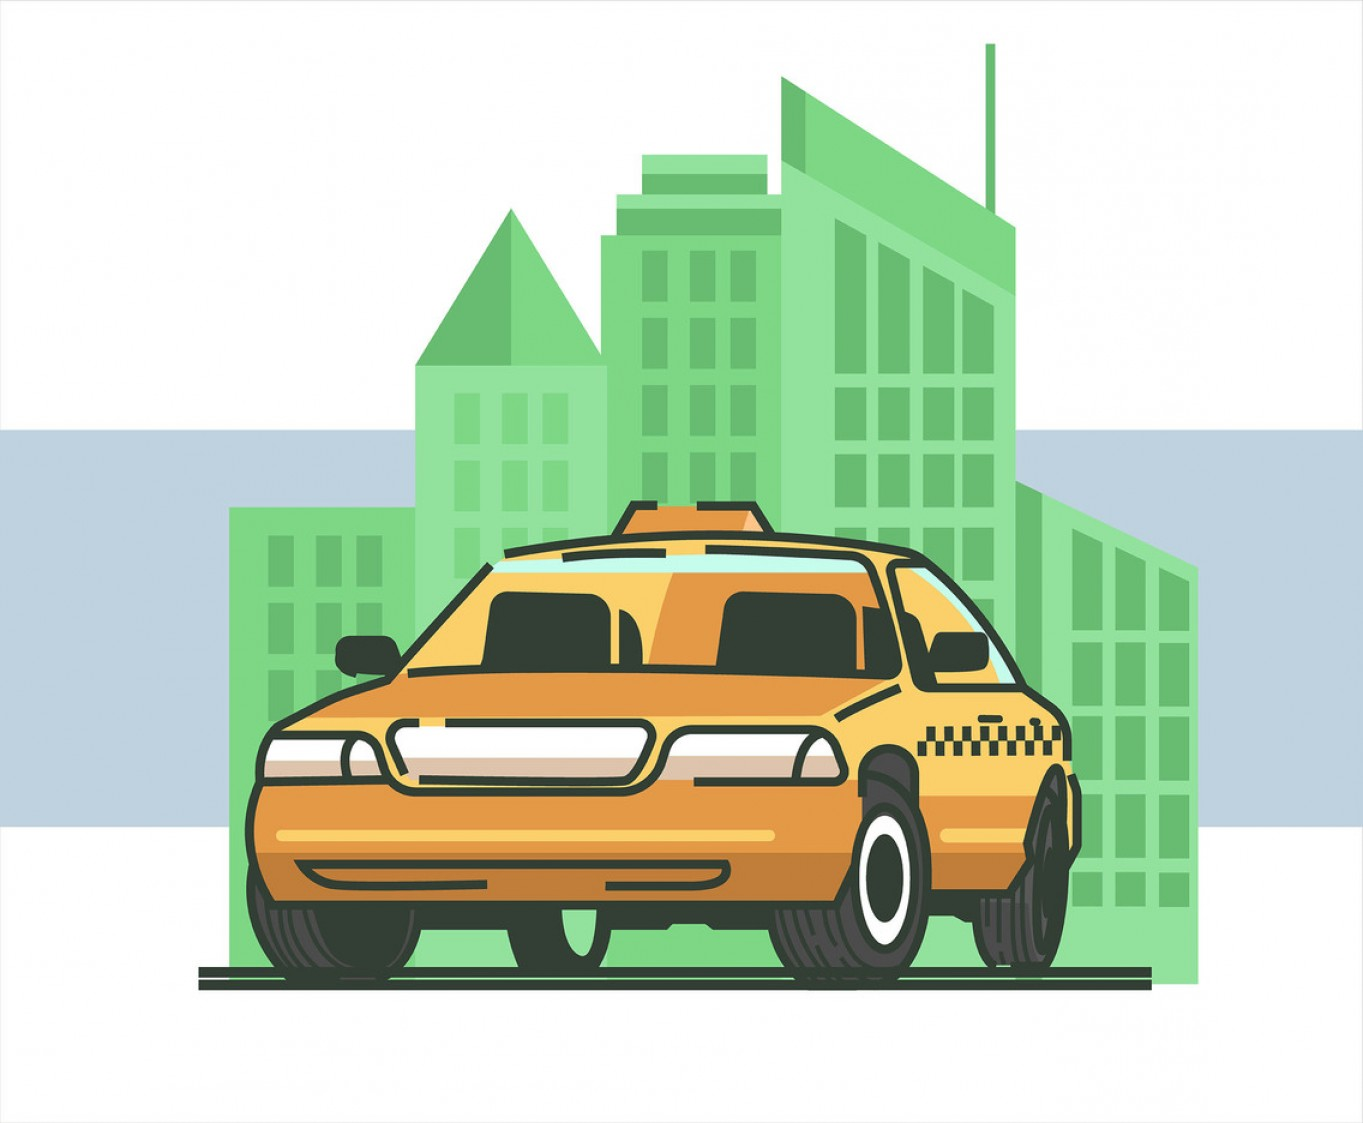 New York Taxi Cab Vector: Taxi Cab Vector In White Background